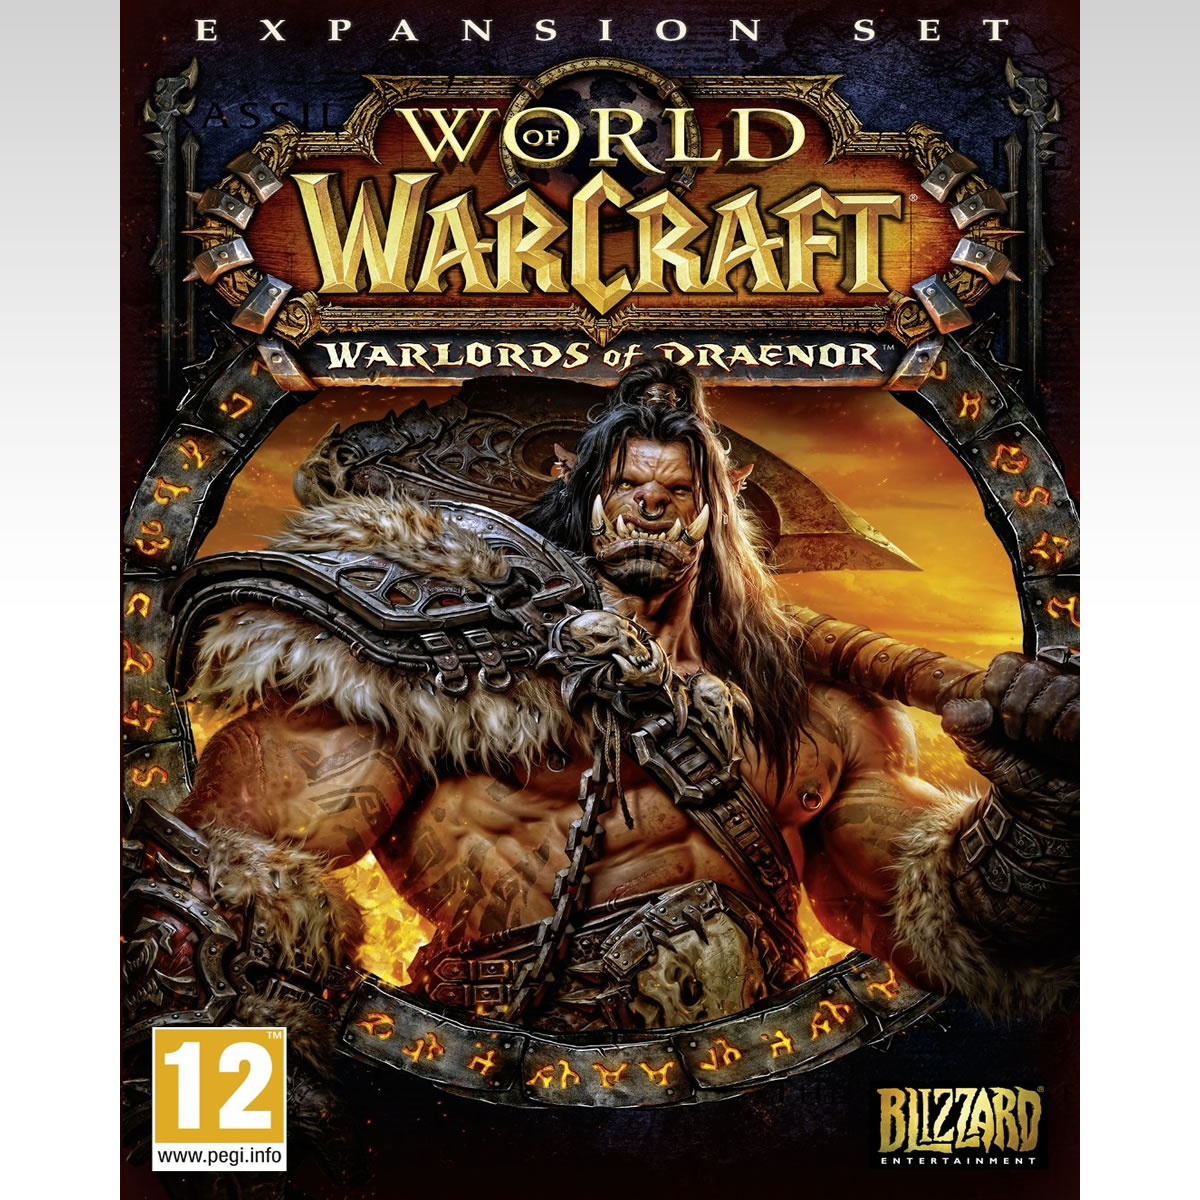 WORLD OF WARCRAFT: WARLORDS OF DRAENOR - EXPANSION SET (PC)